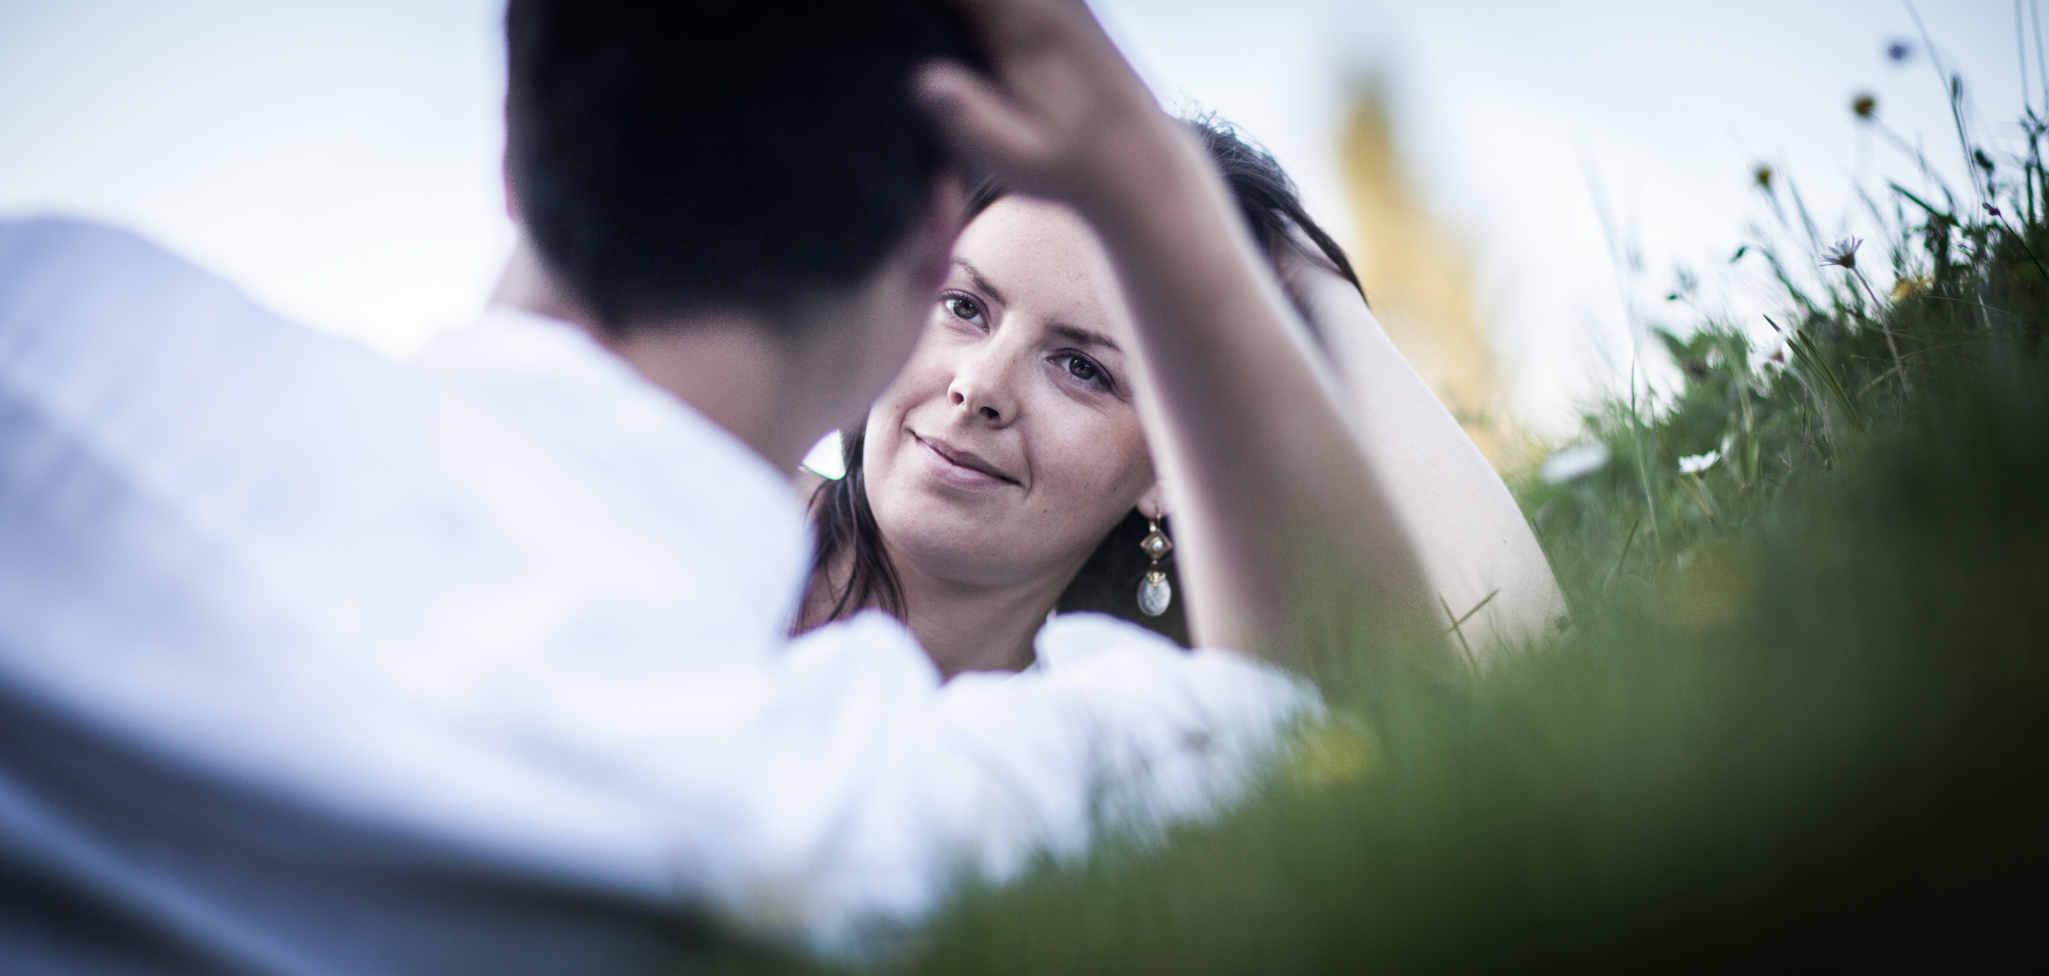 photographe-mariage-ardeche-rhone-alpes-geneve-suisse-courchevel-megeve-photo--9